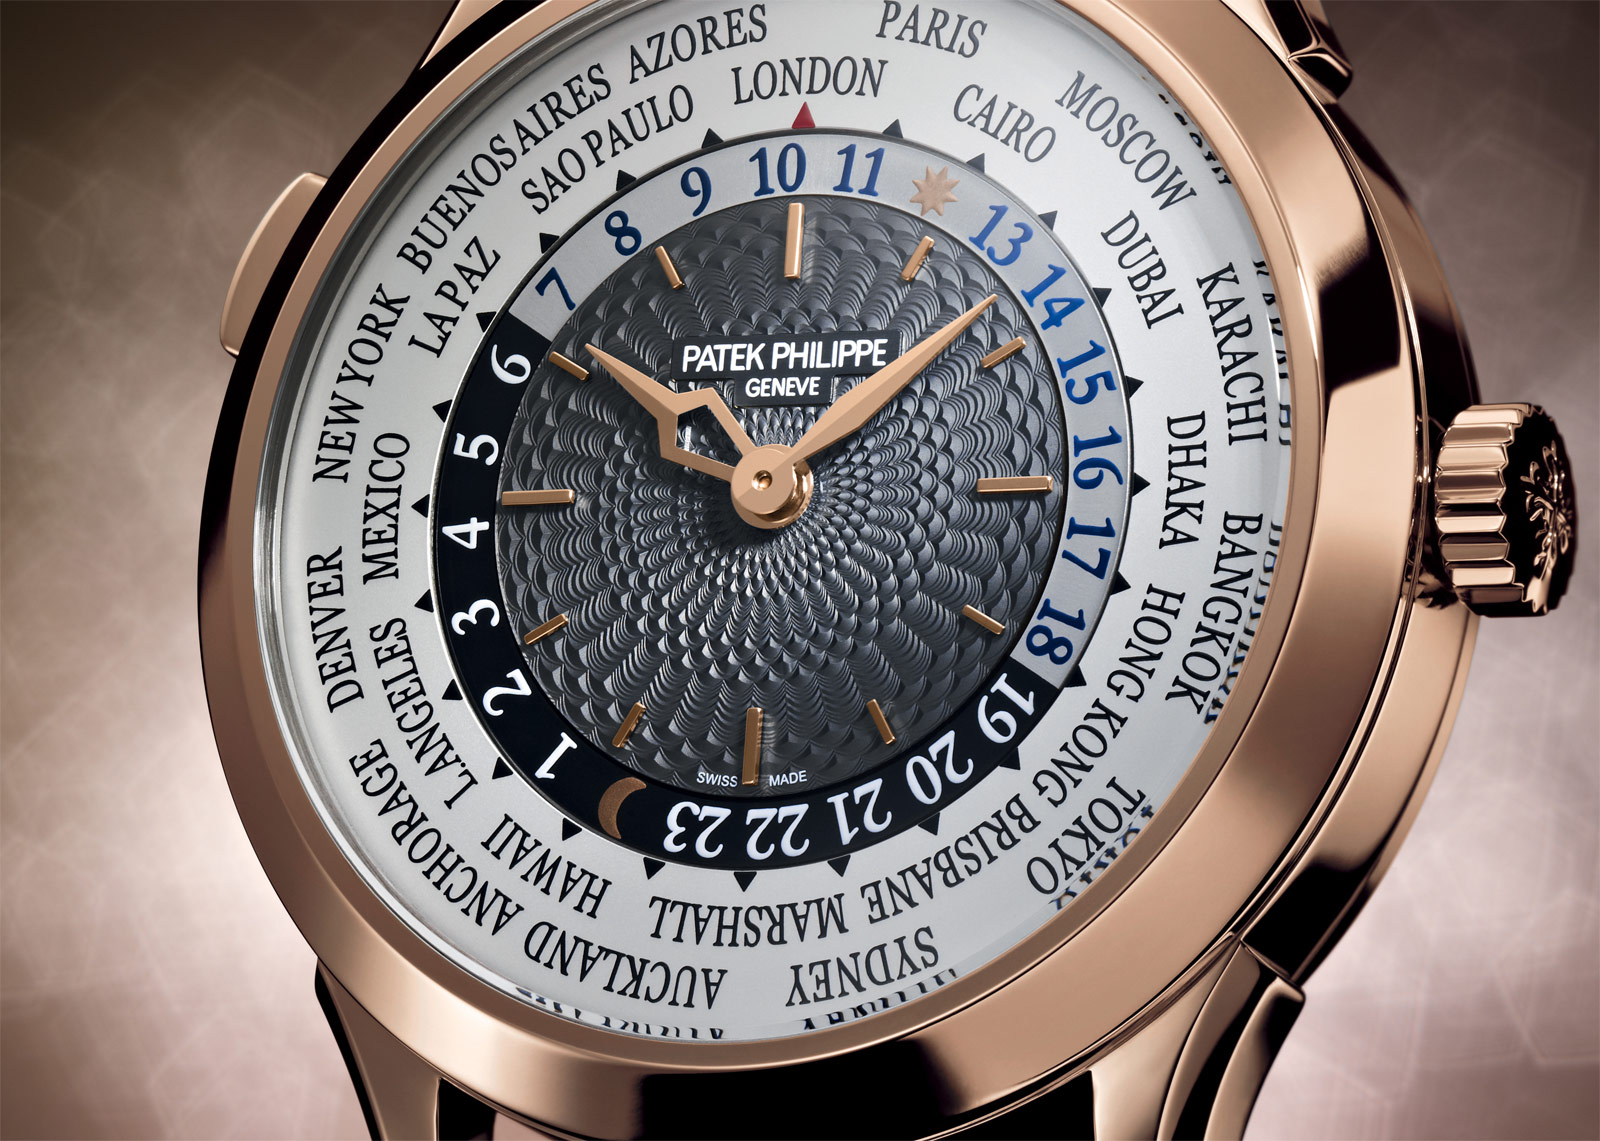 New World Time by Patek Philippe – a Technical Marvel by an Exemplary Watchmaker